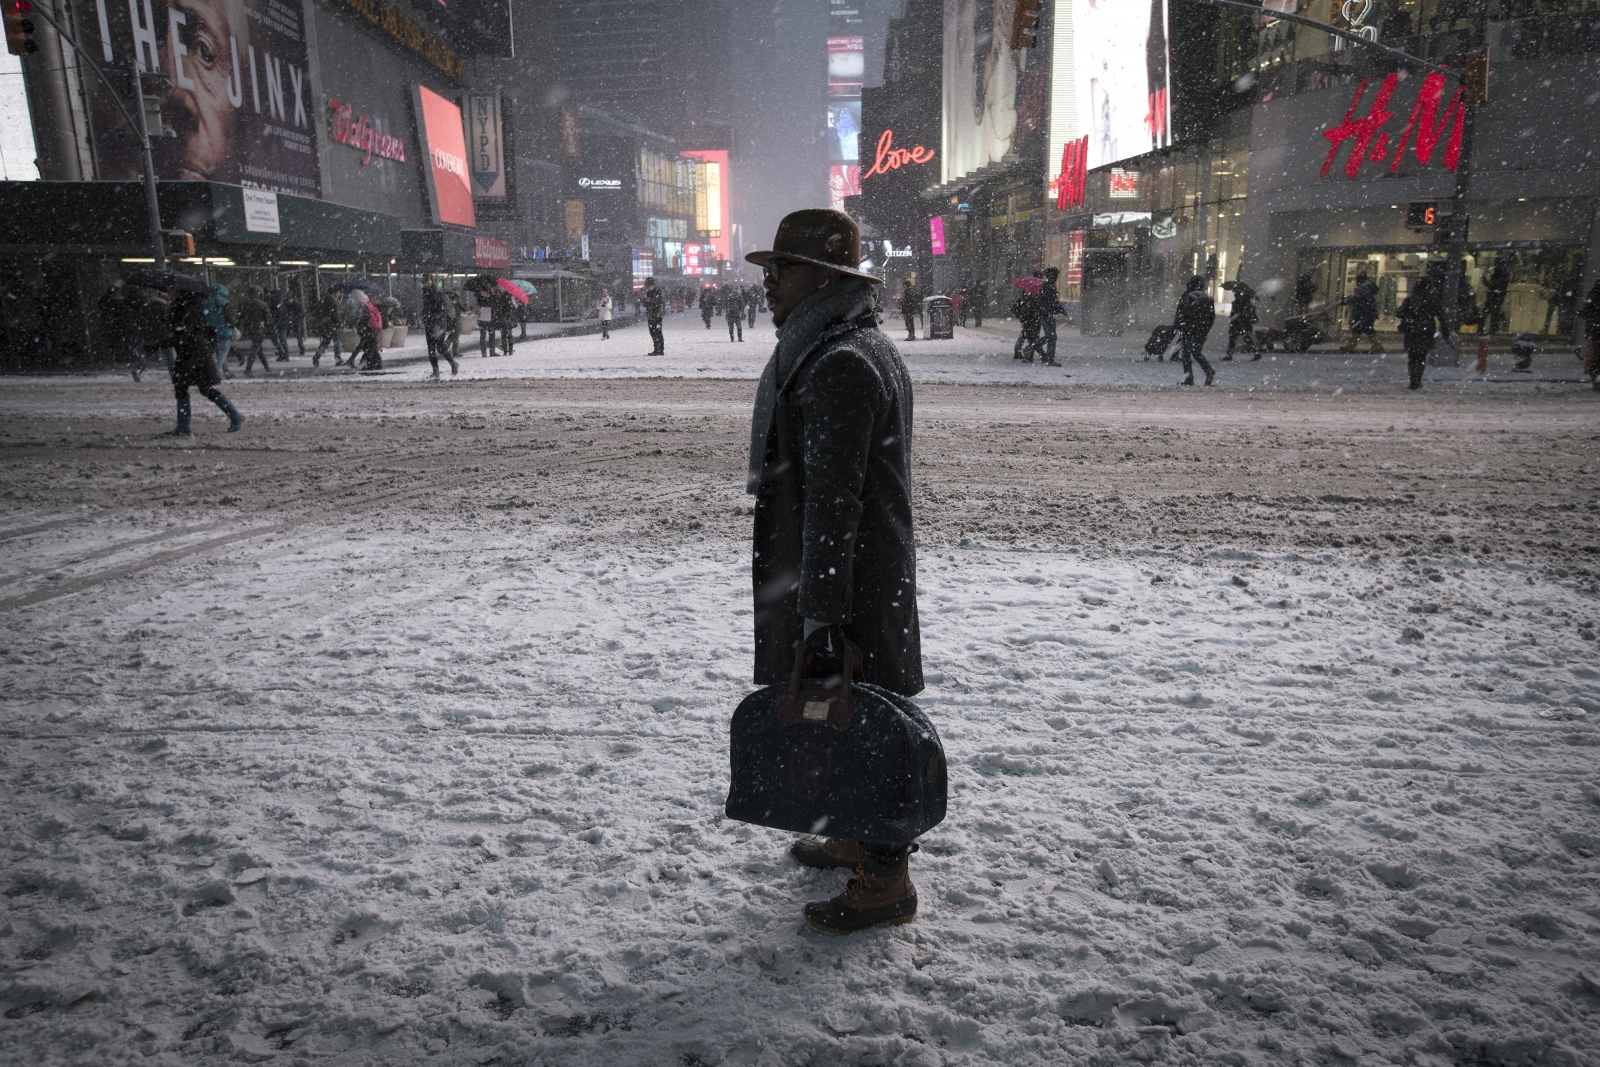 A man stands in falling snow on West 42nd street in Times Square in New York, January 26, 2015.